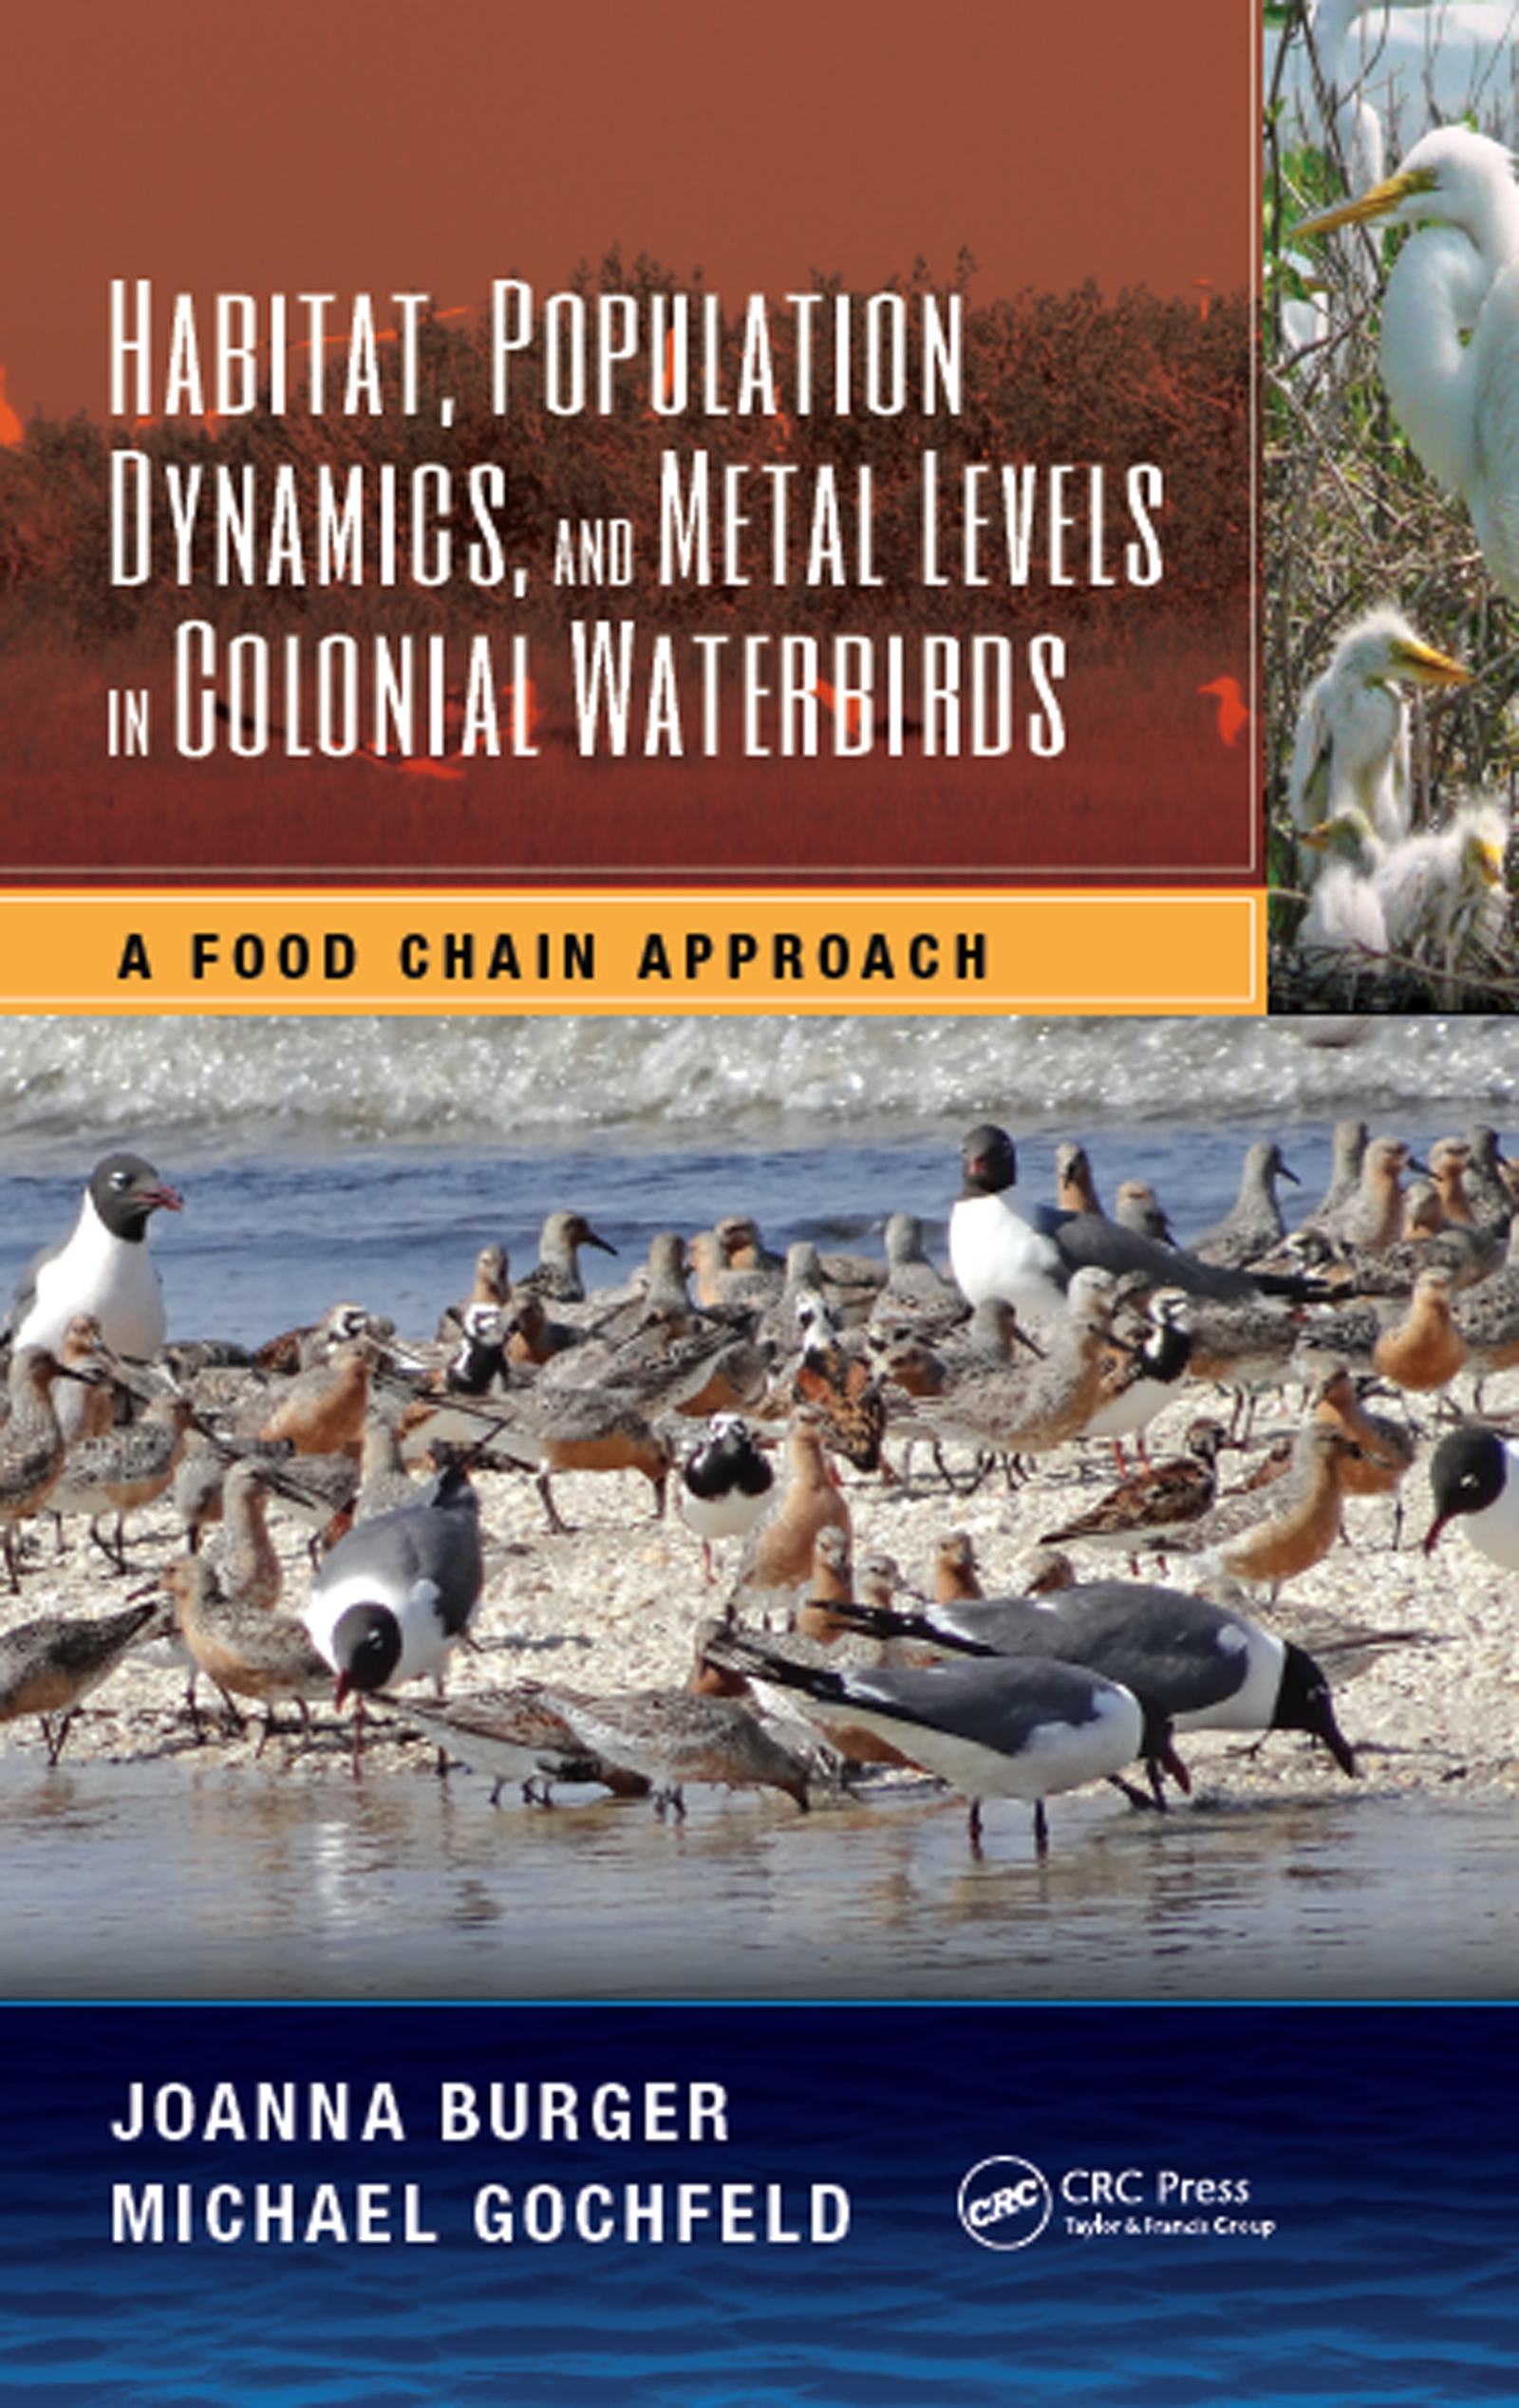 Heavy Metals in Fish, Lower Trophic Levels, and Passerine Birds